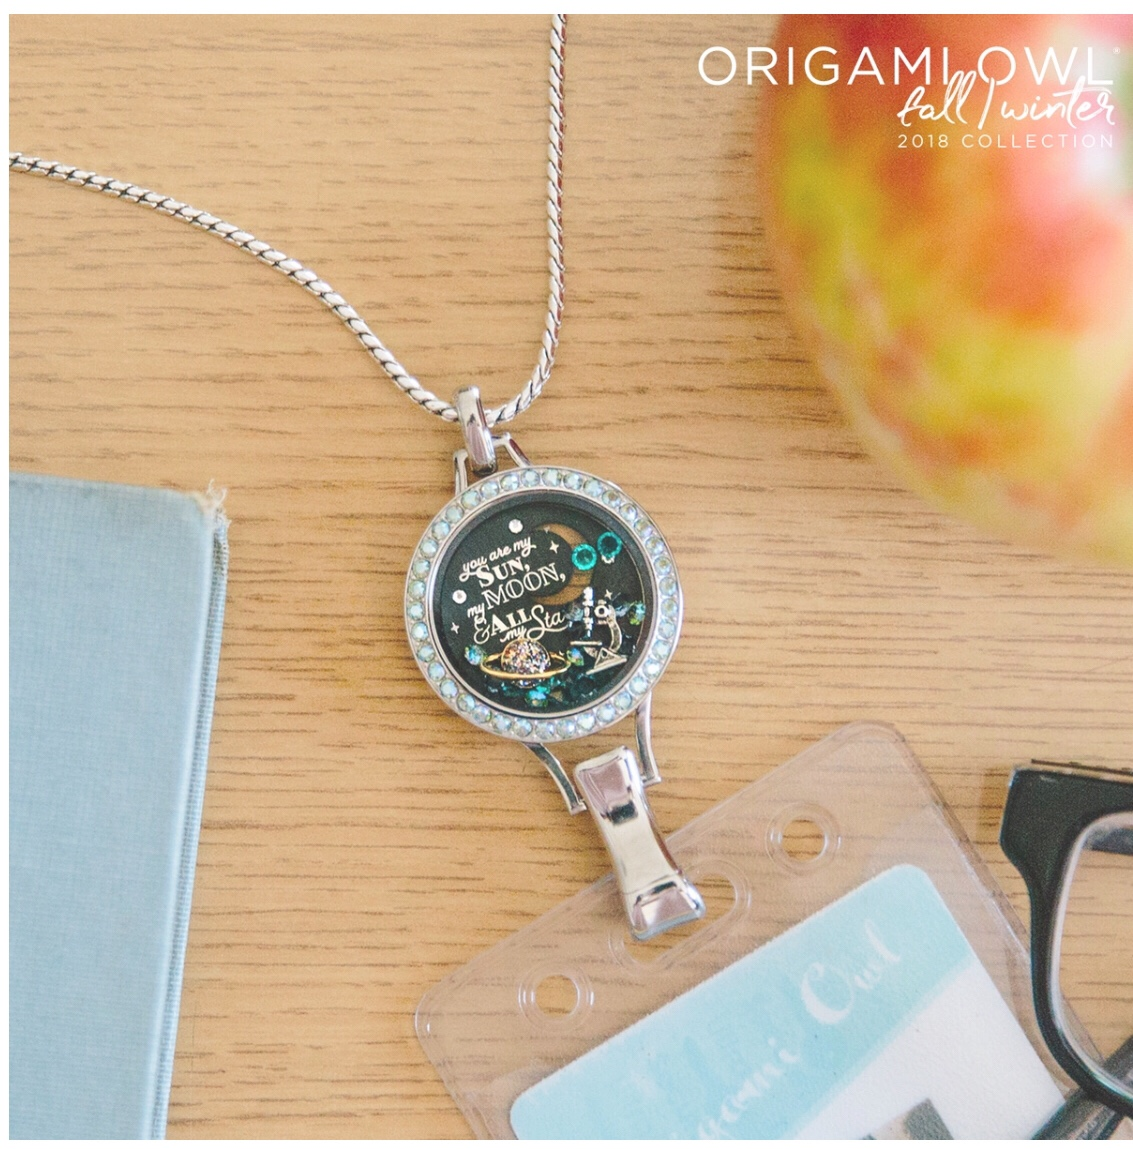 Retired Origami Owl Master List - Hoot Owl Lockets - Origami Owl ... | 1149x1133